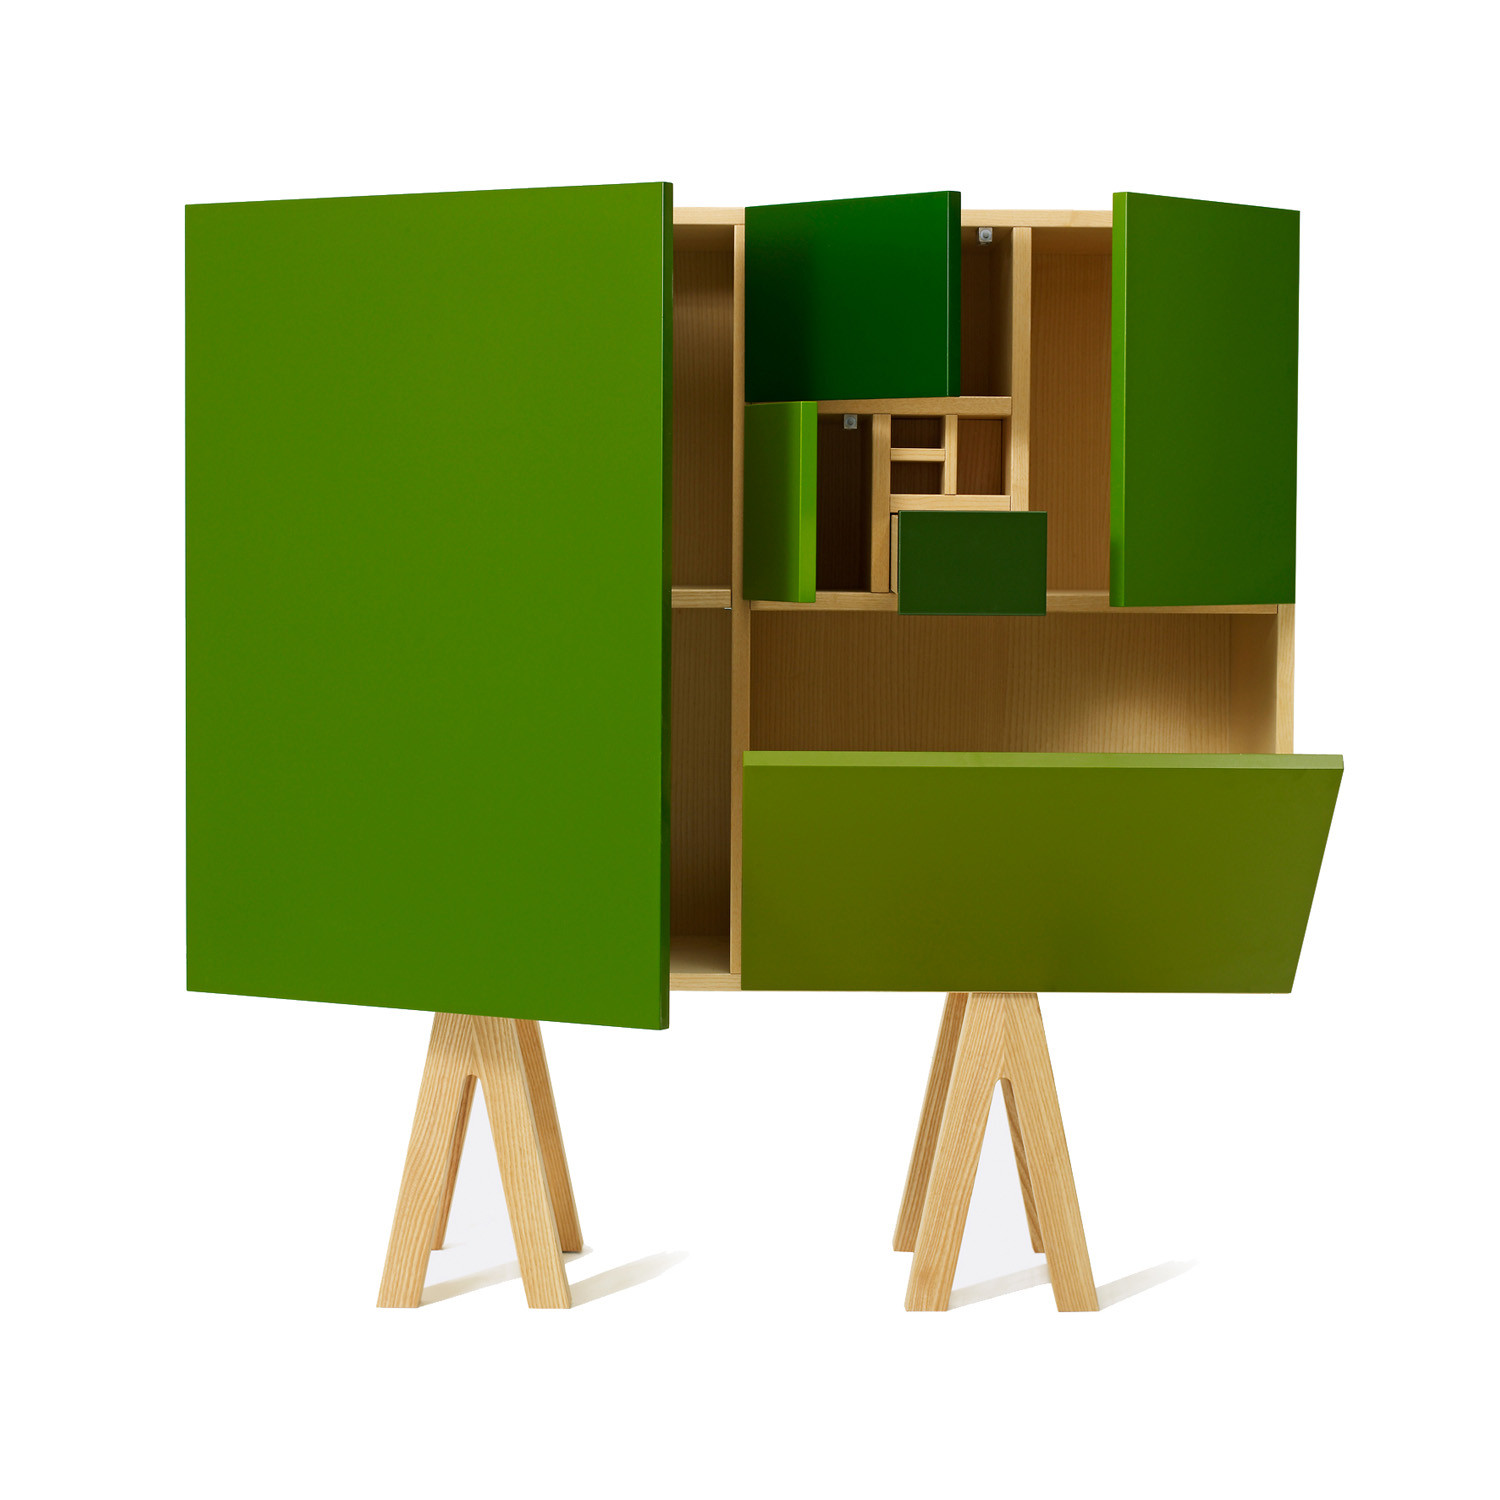 No. 216 Sideboard in Green